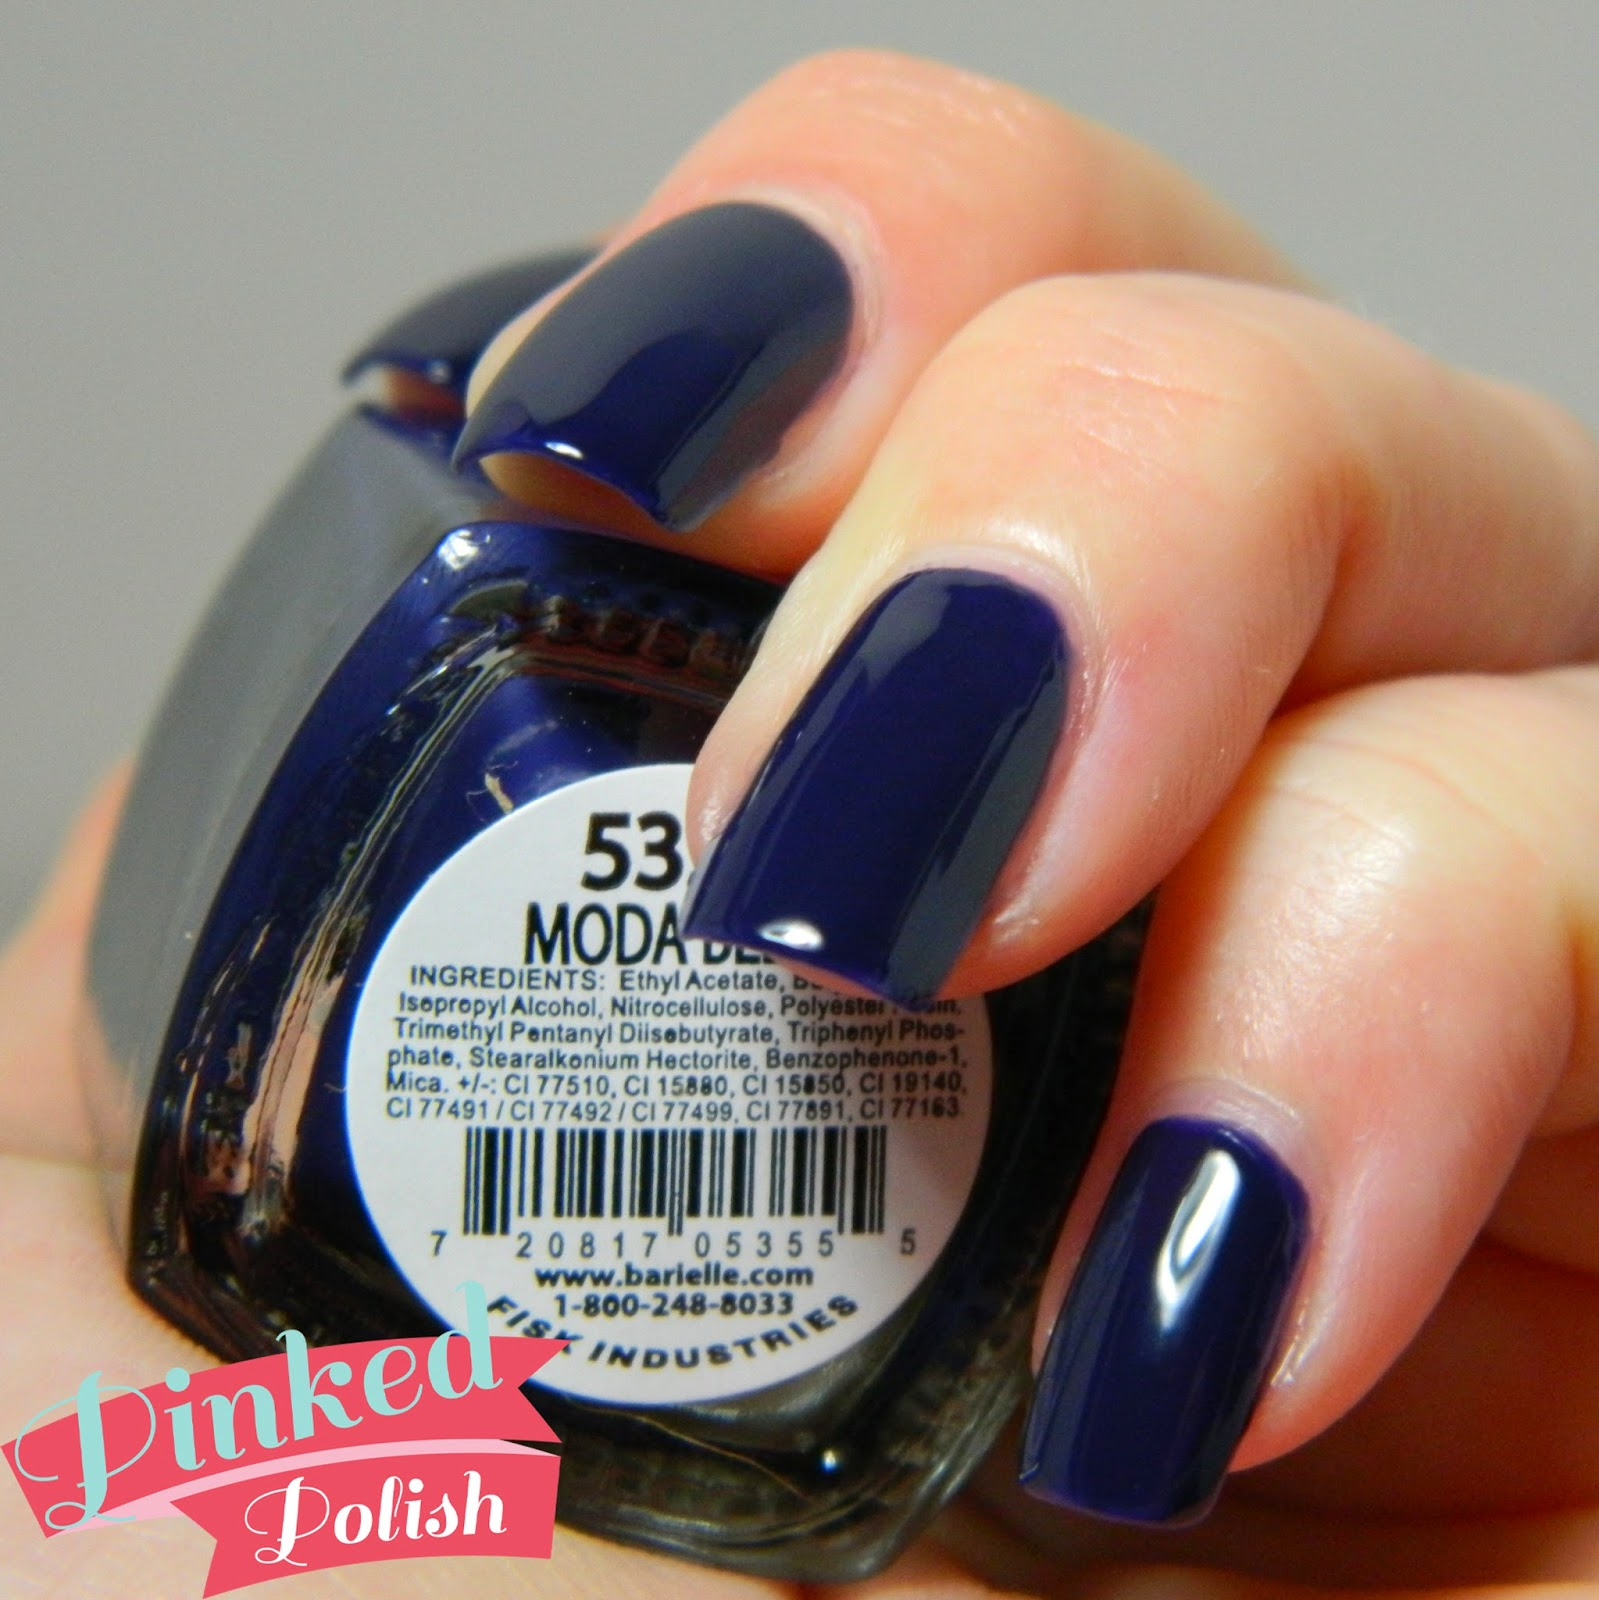 Pinked Polish: Barielle Me Couture Swatches and Review